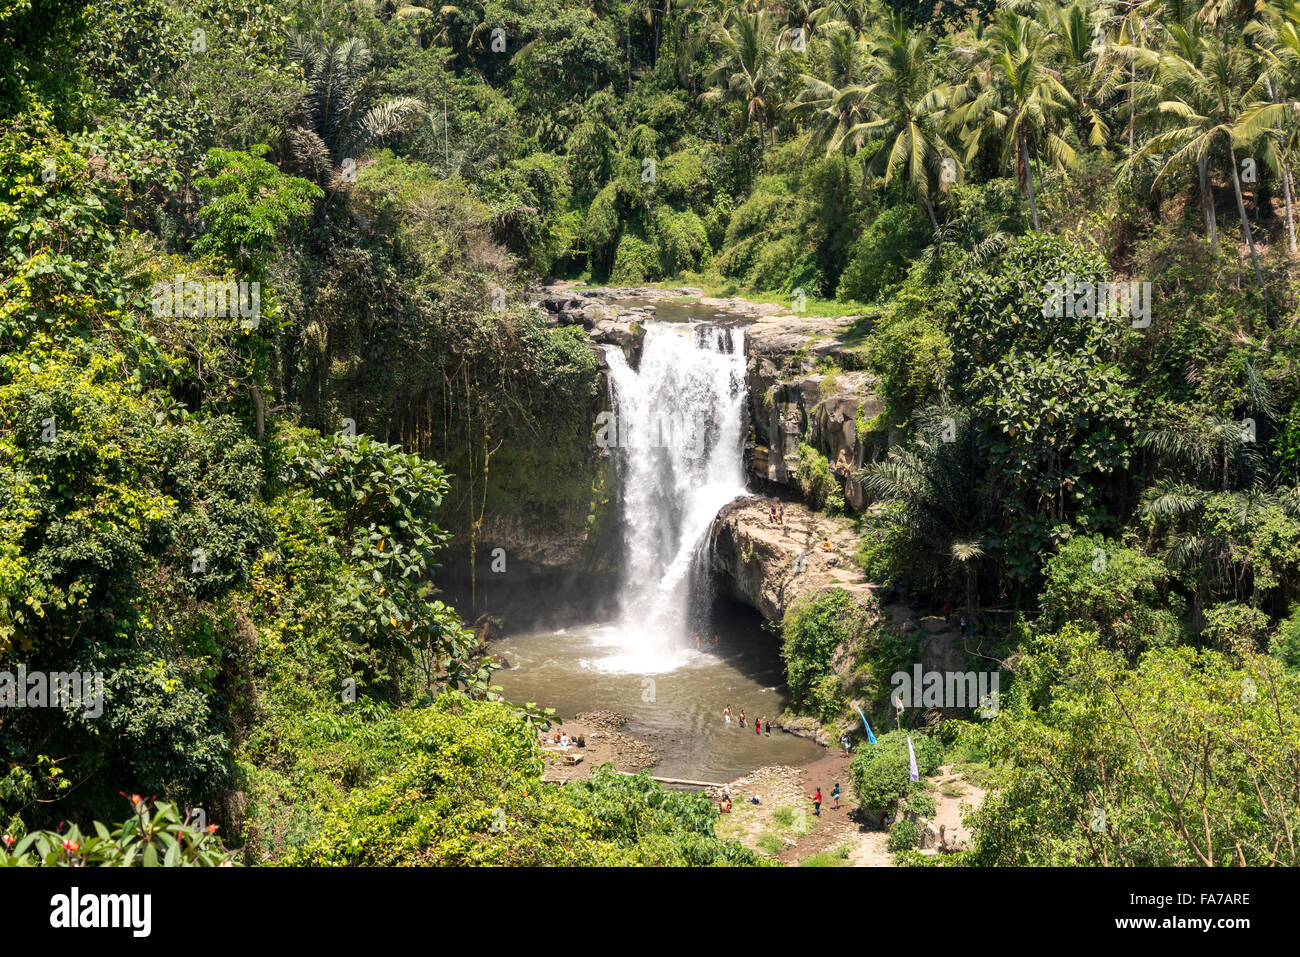 Tegenungan waterfall near Ubud, Bali, Indonesia - Stock Image